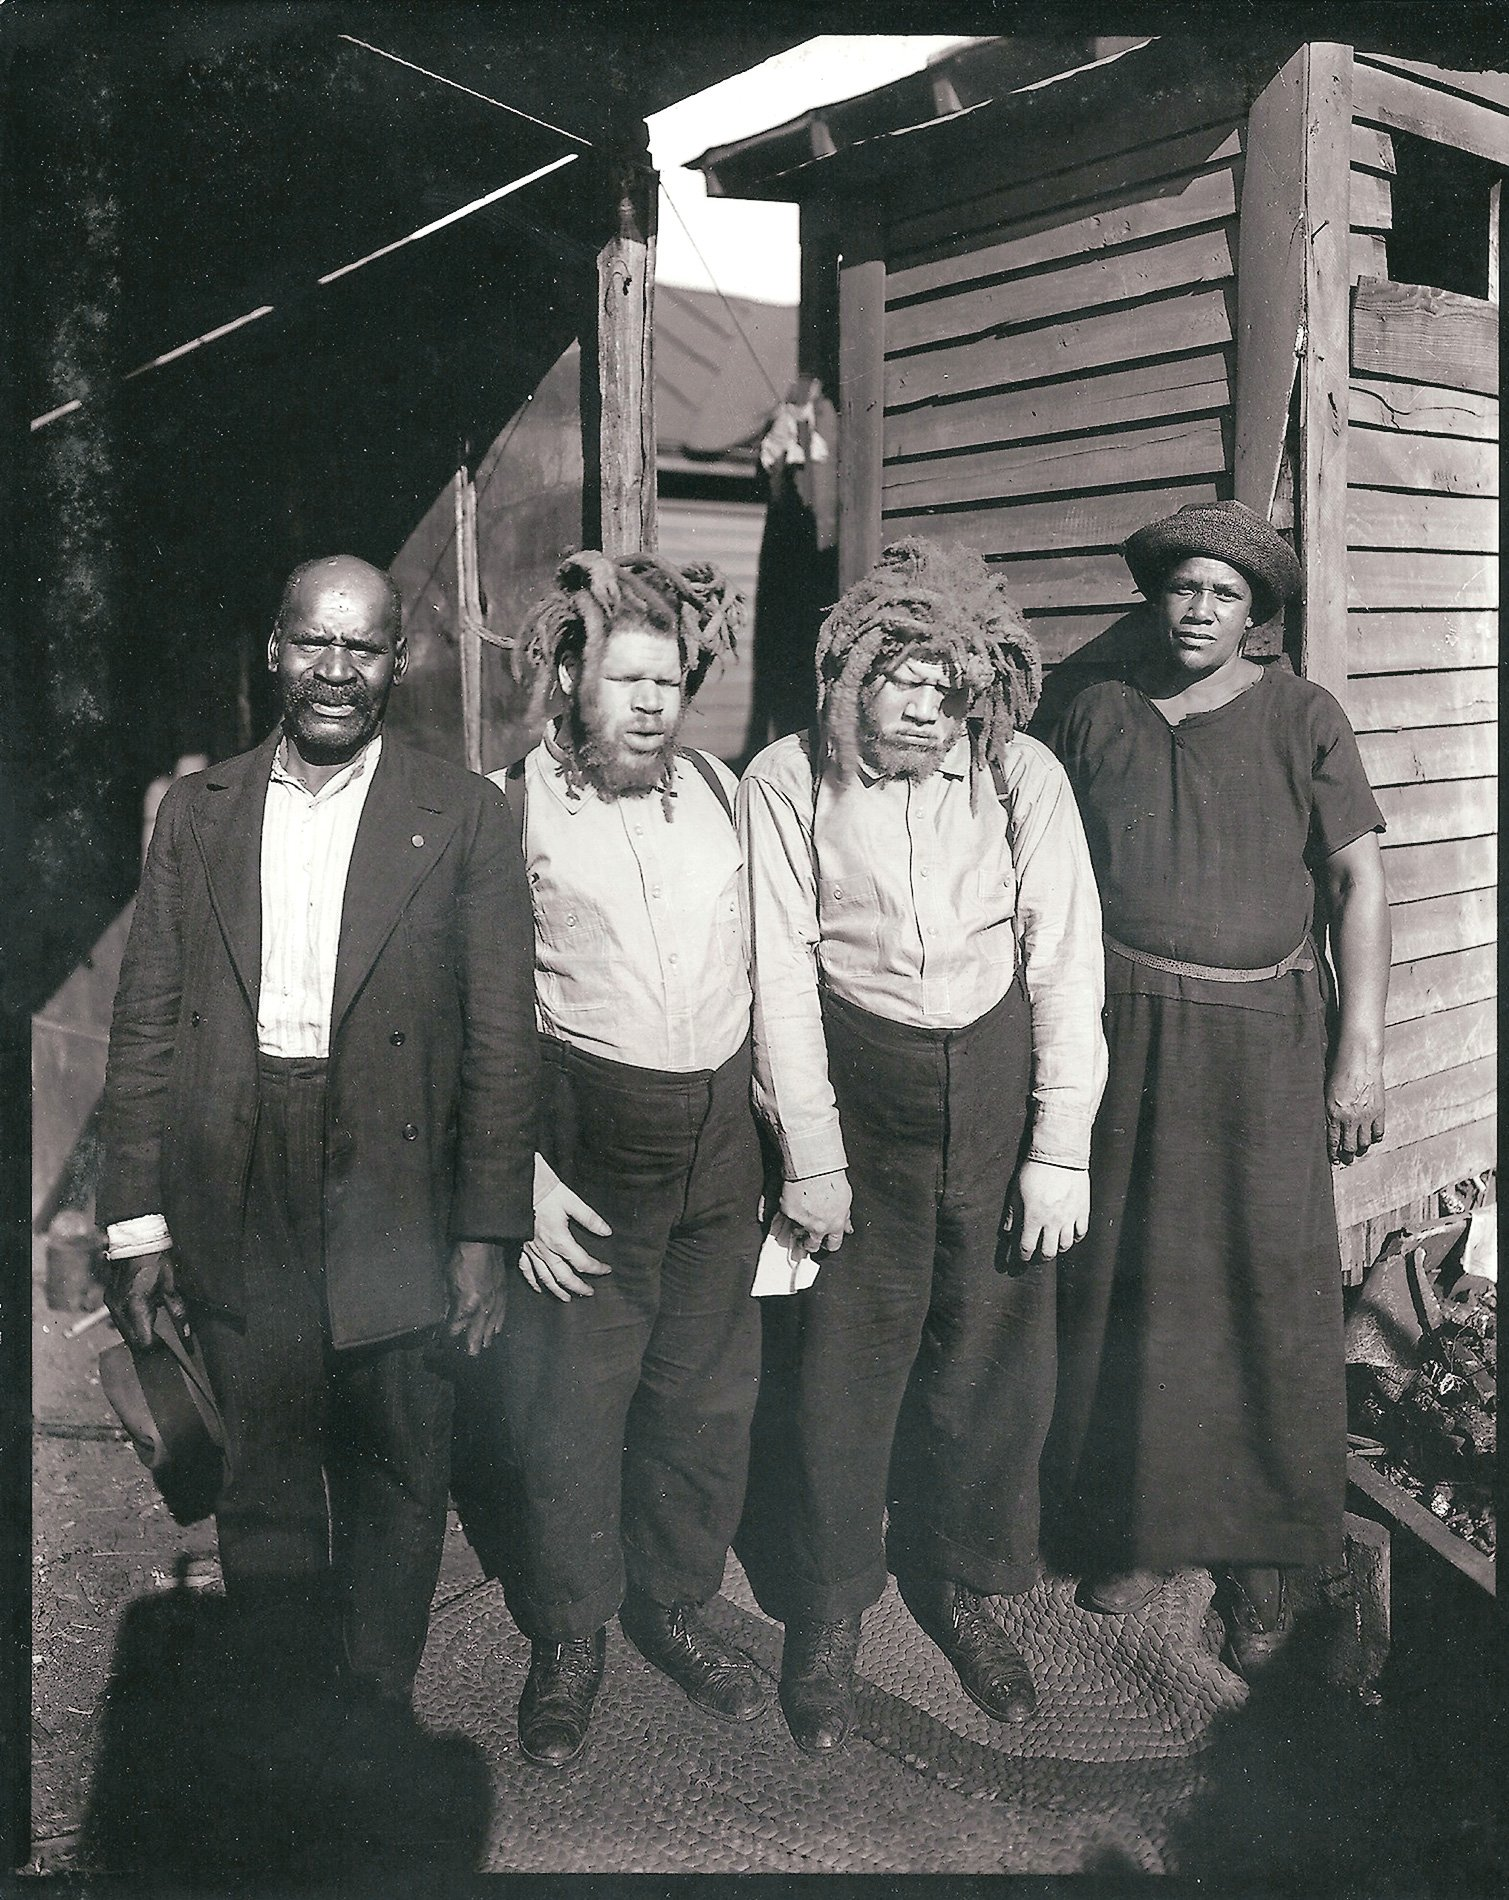 Harriett Muse, right, and husband Cabell, far left, with the brothers shortly after she found them at a sideshow in 1927. Photograph by George Davis, courtesy of Frank Ewald